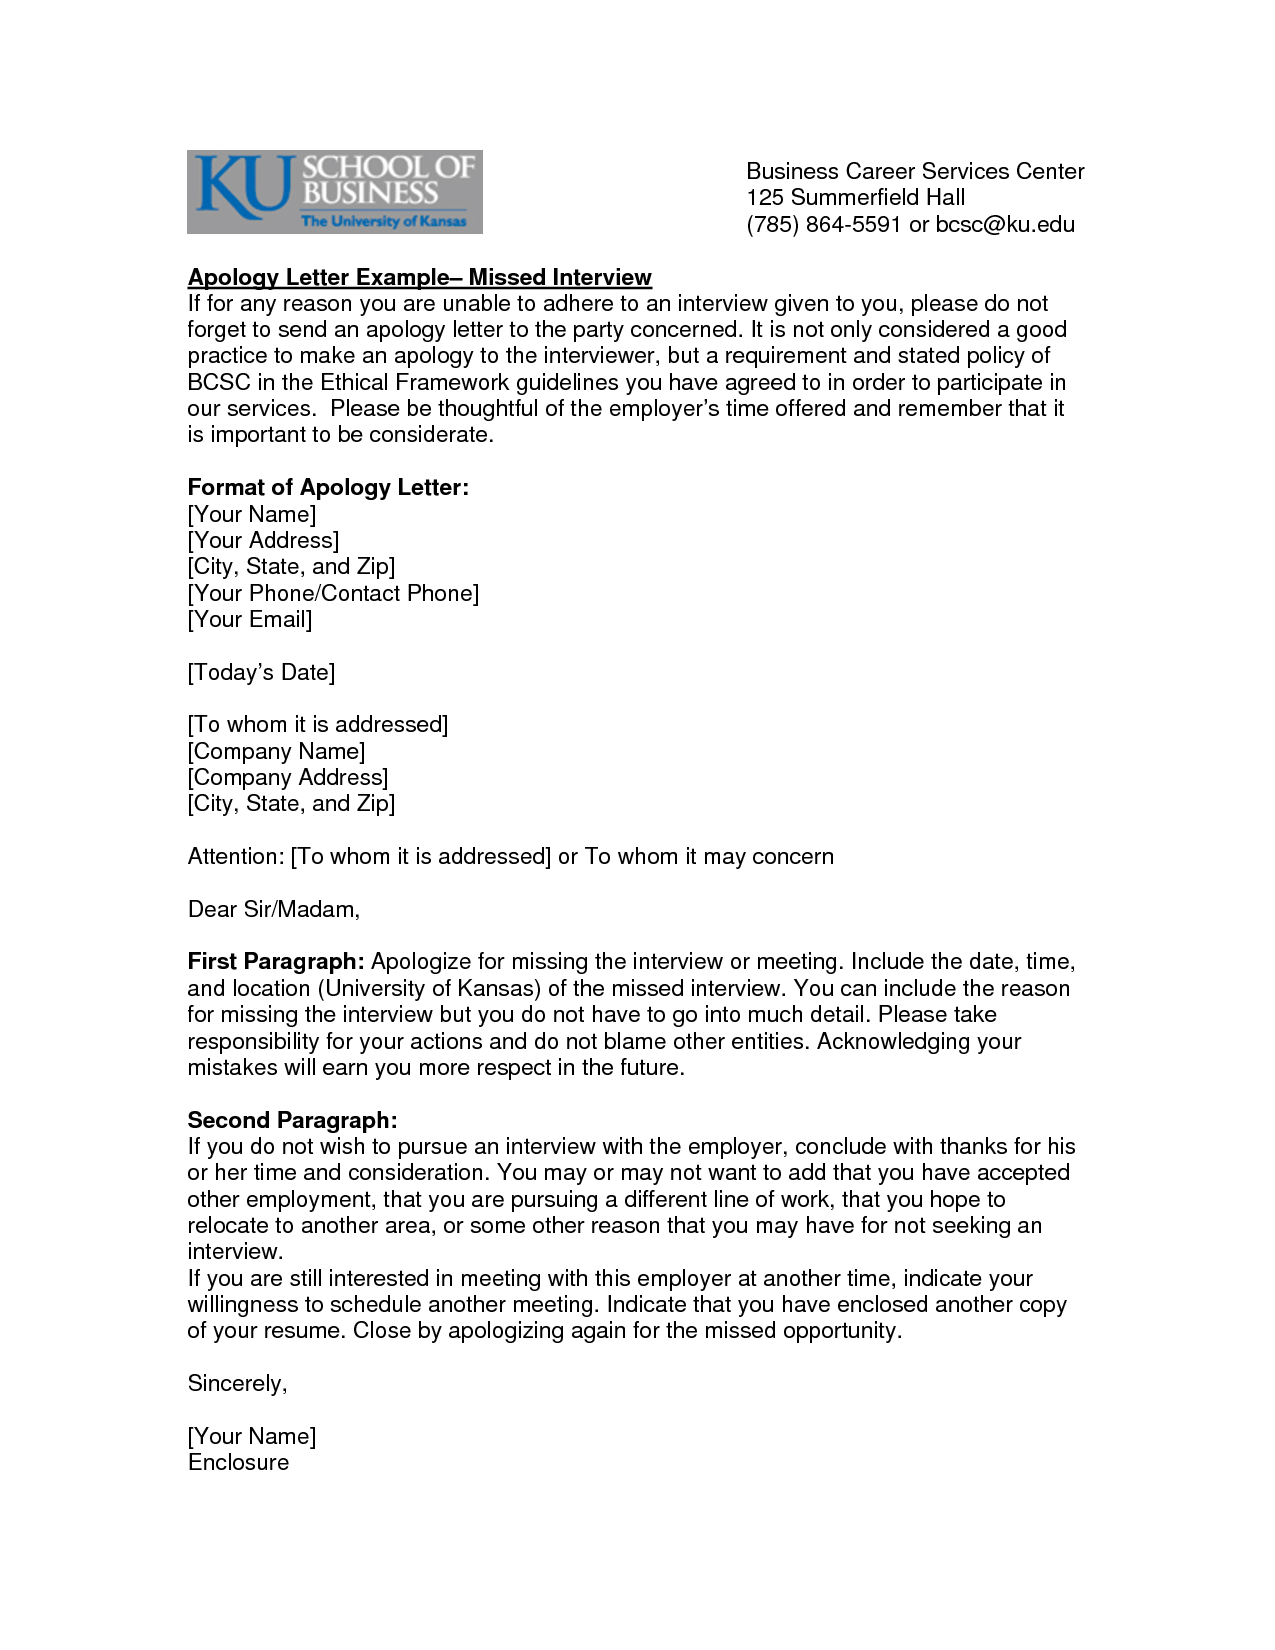 Airline Cargo Claim Letter For Free Agenda Templates For Meetings